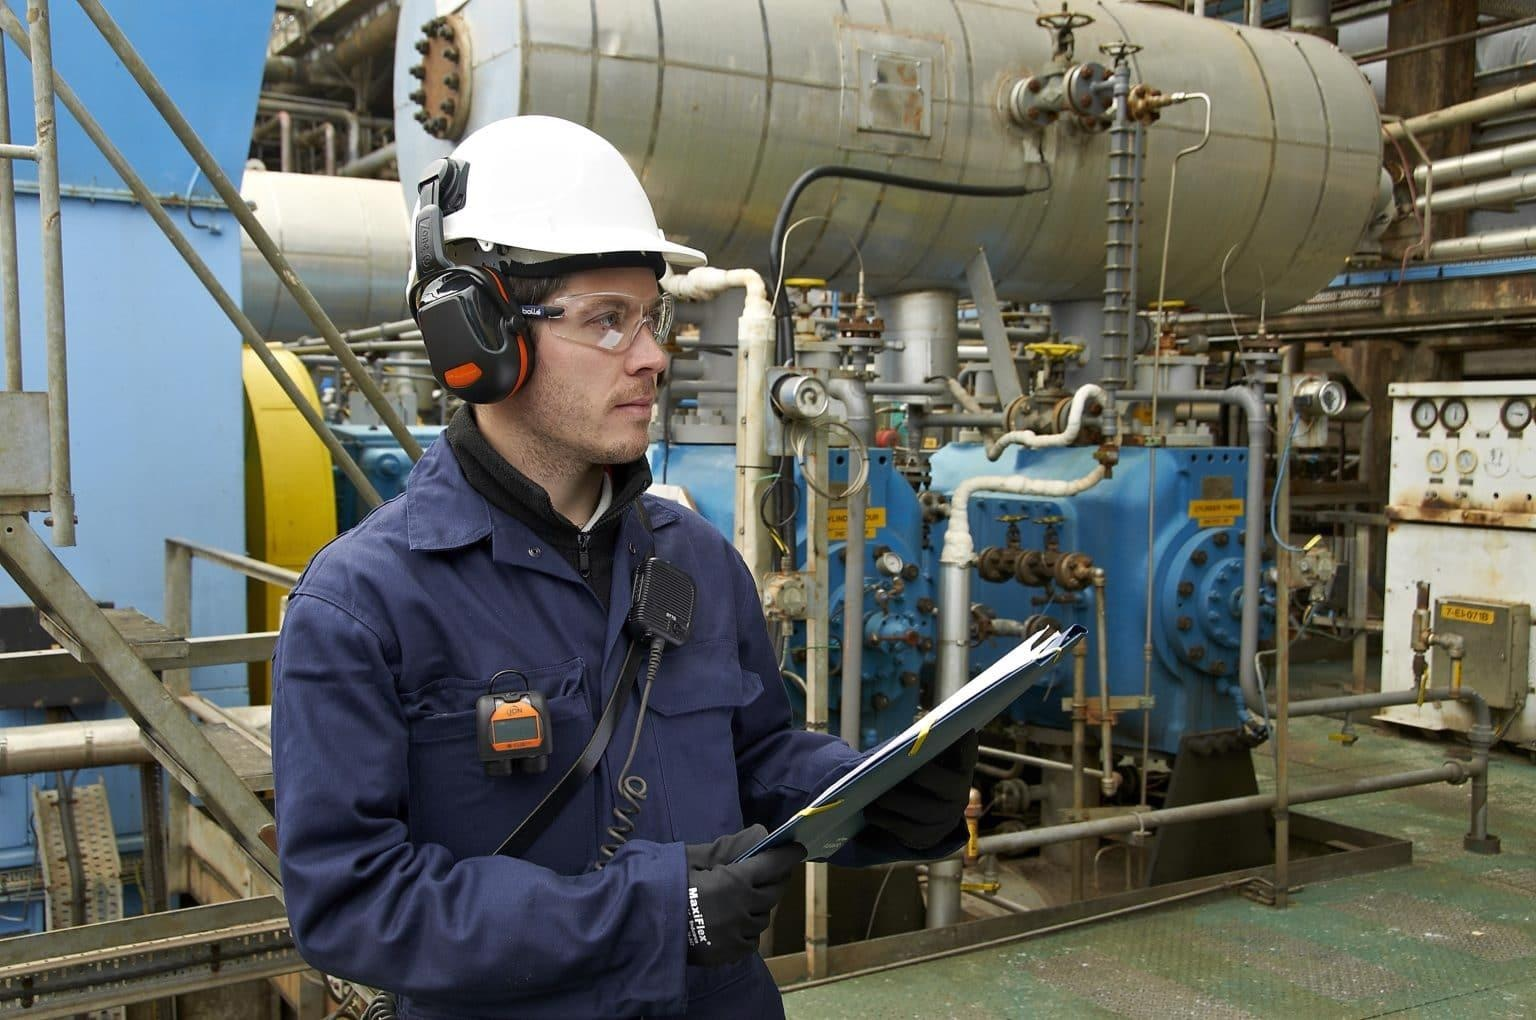 Monitoring Occupational Exposure to Toxic Chemical Compounds